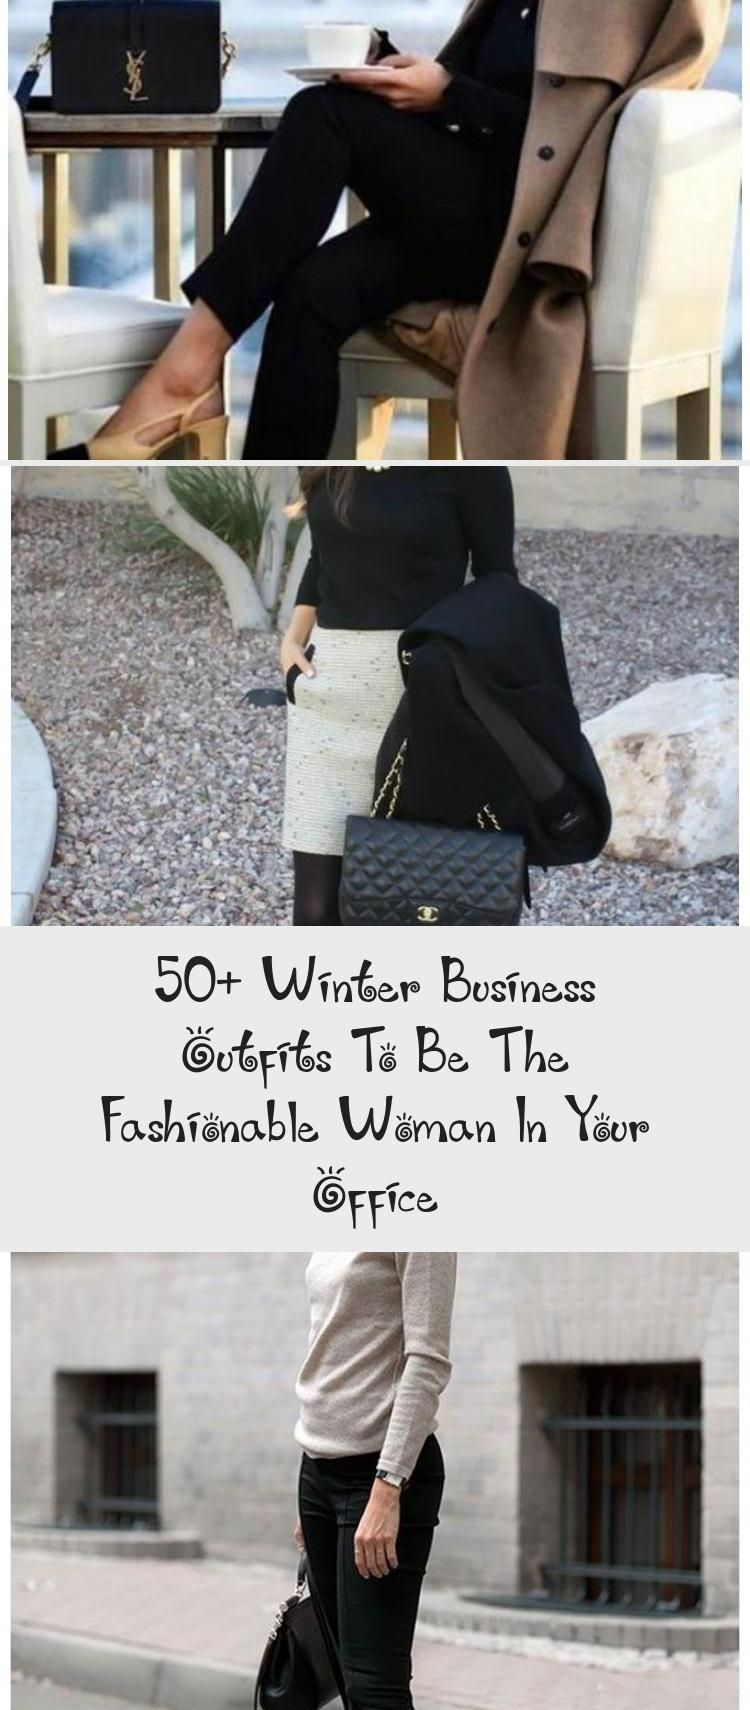 50+ Winter Business Outfits To Be The Fashionable Woman In Your Office - Galafashion / Women Outfits